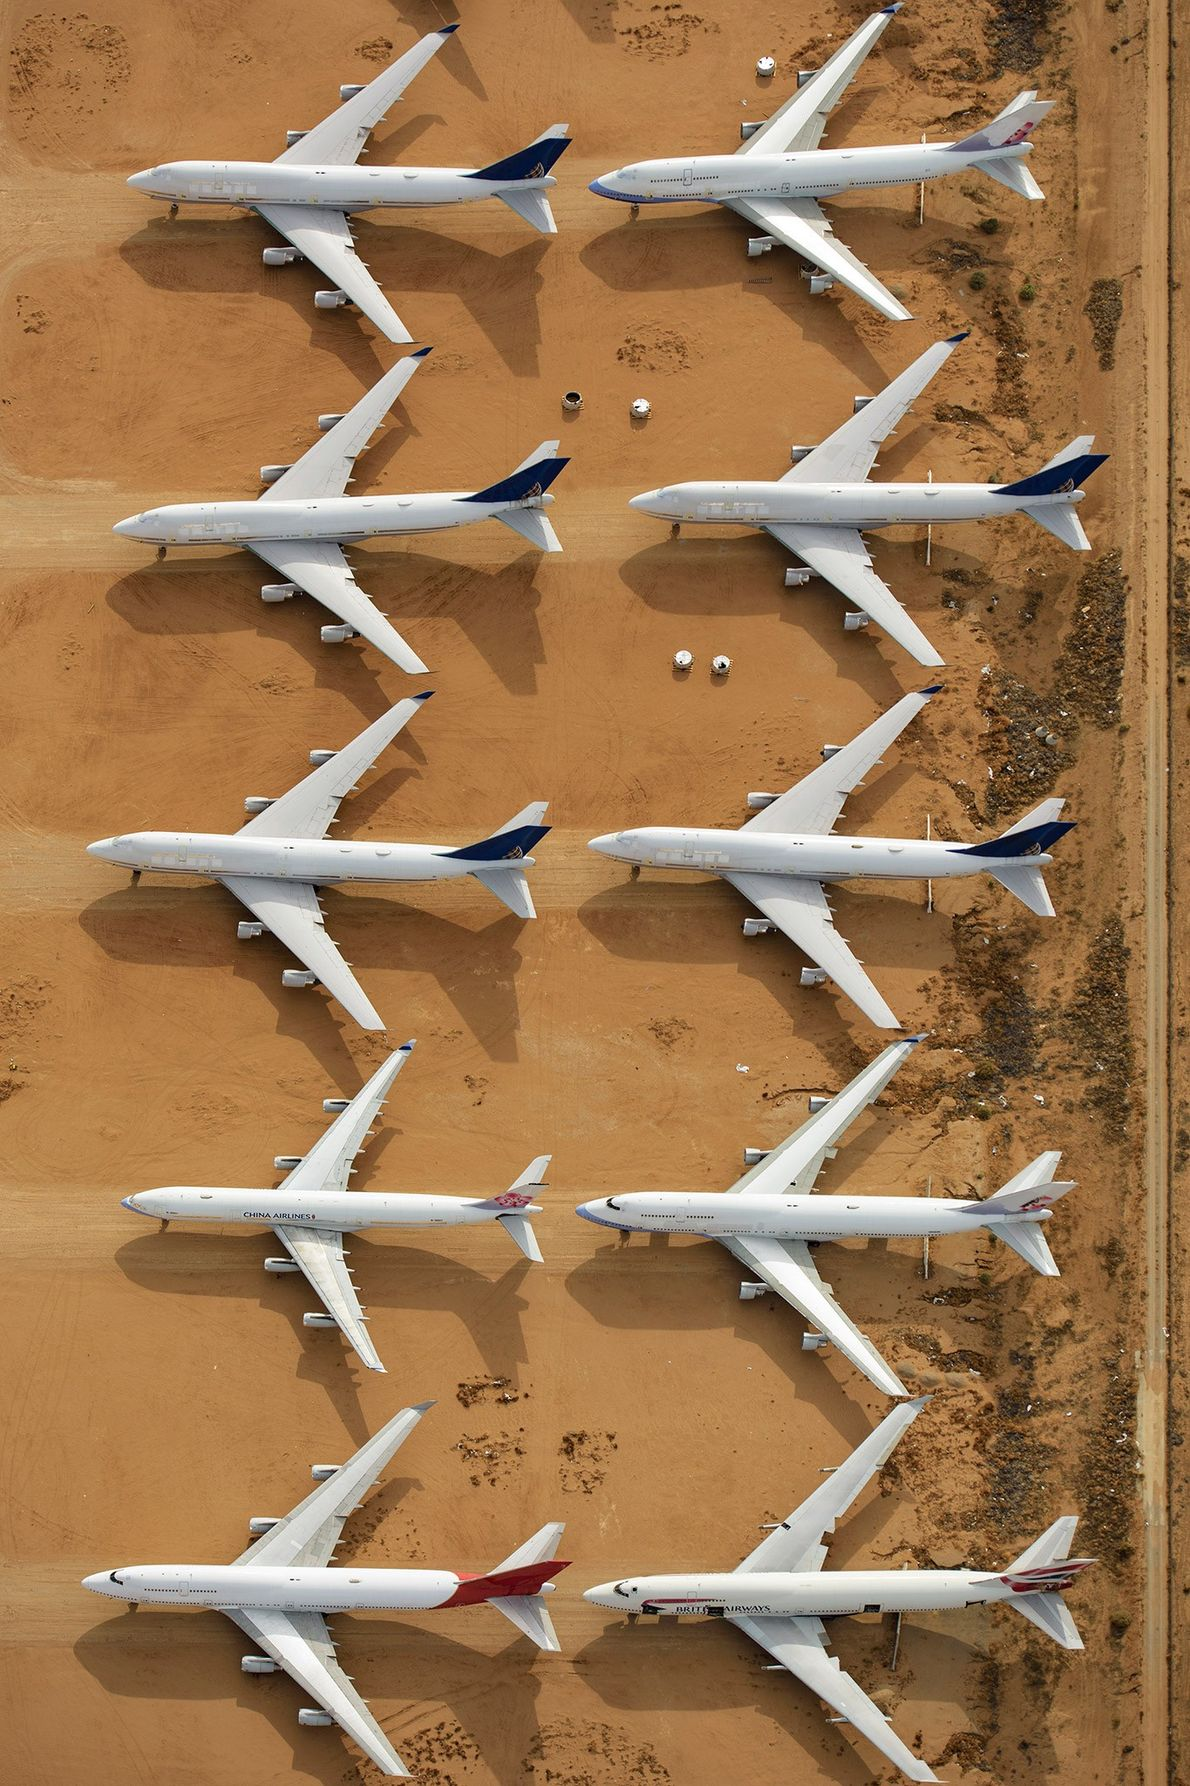 The airport also stores retired planes, now used for parts replacement and scrap metal.